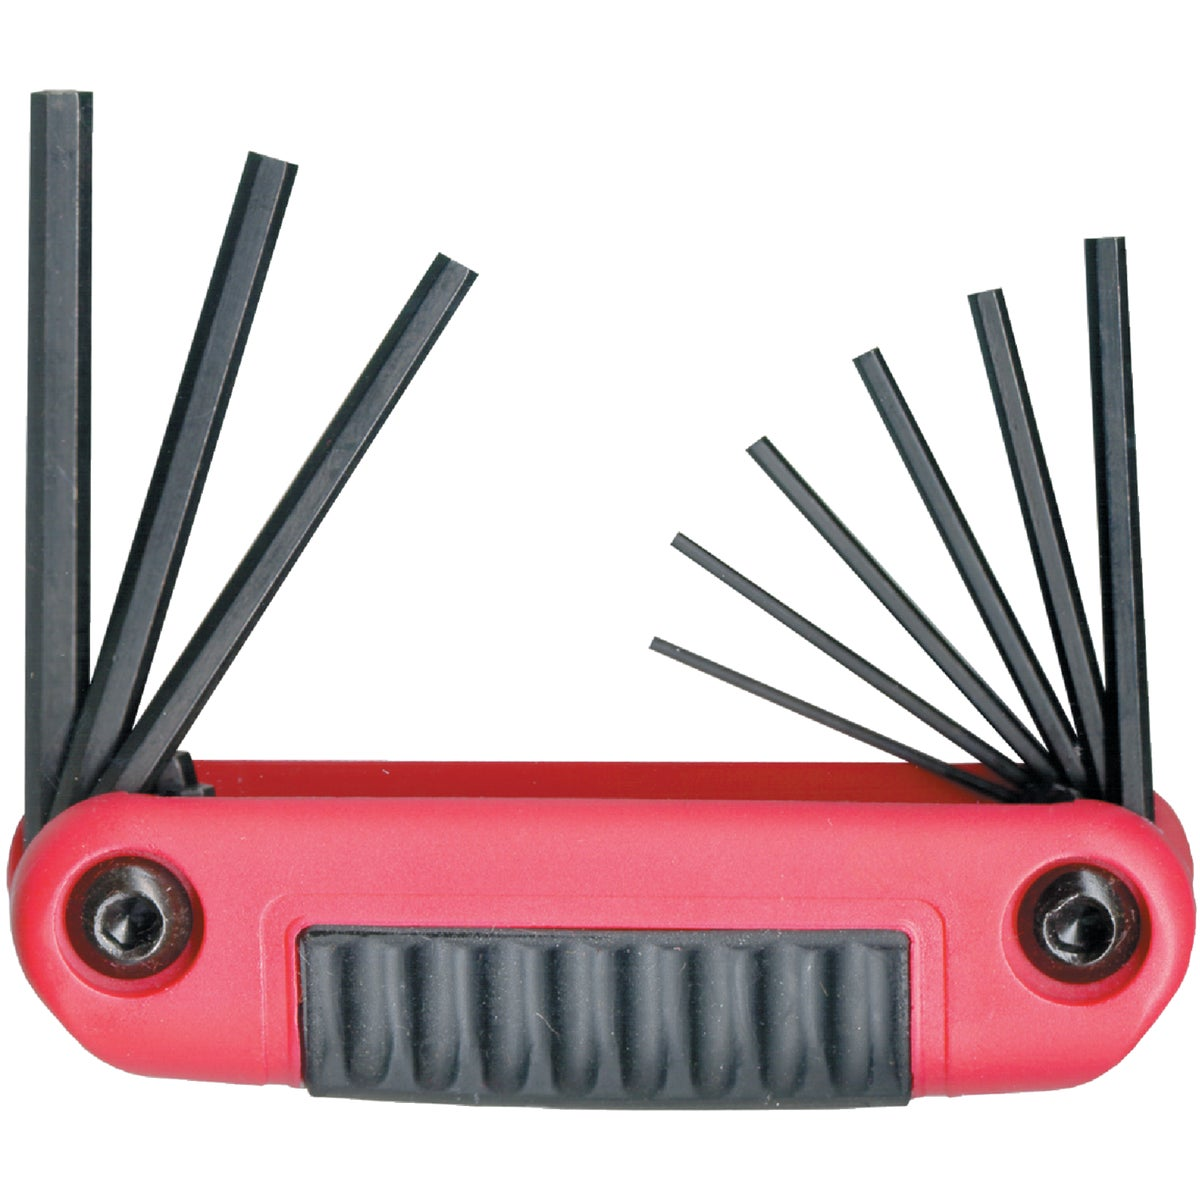 9PC HEX KEY SET - 25912 by Eklind